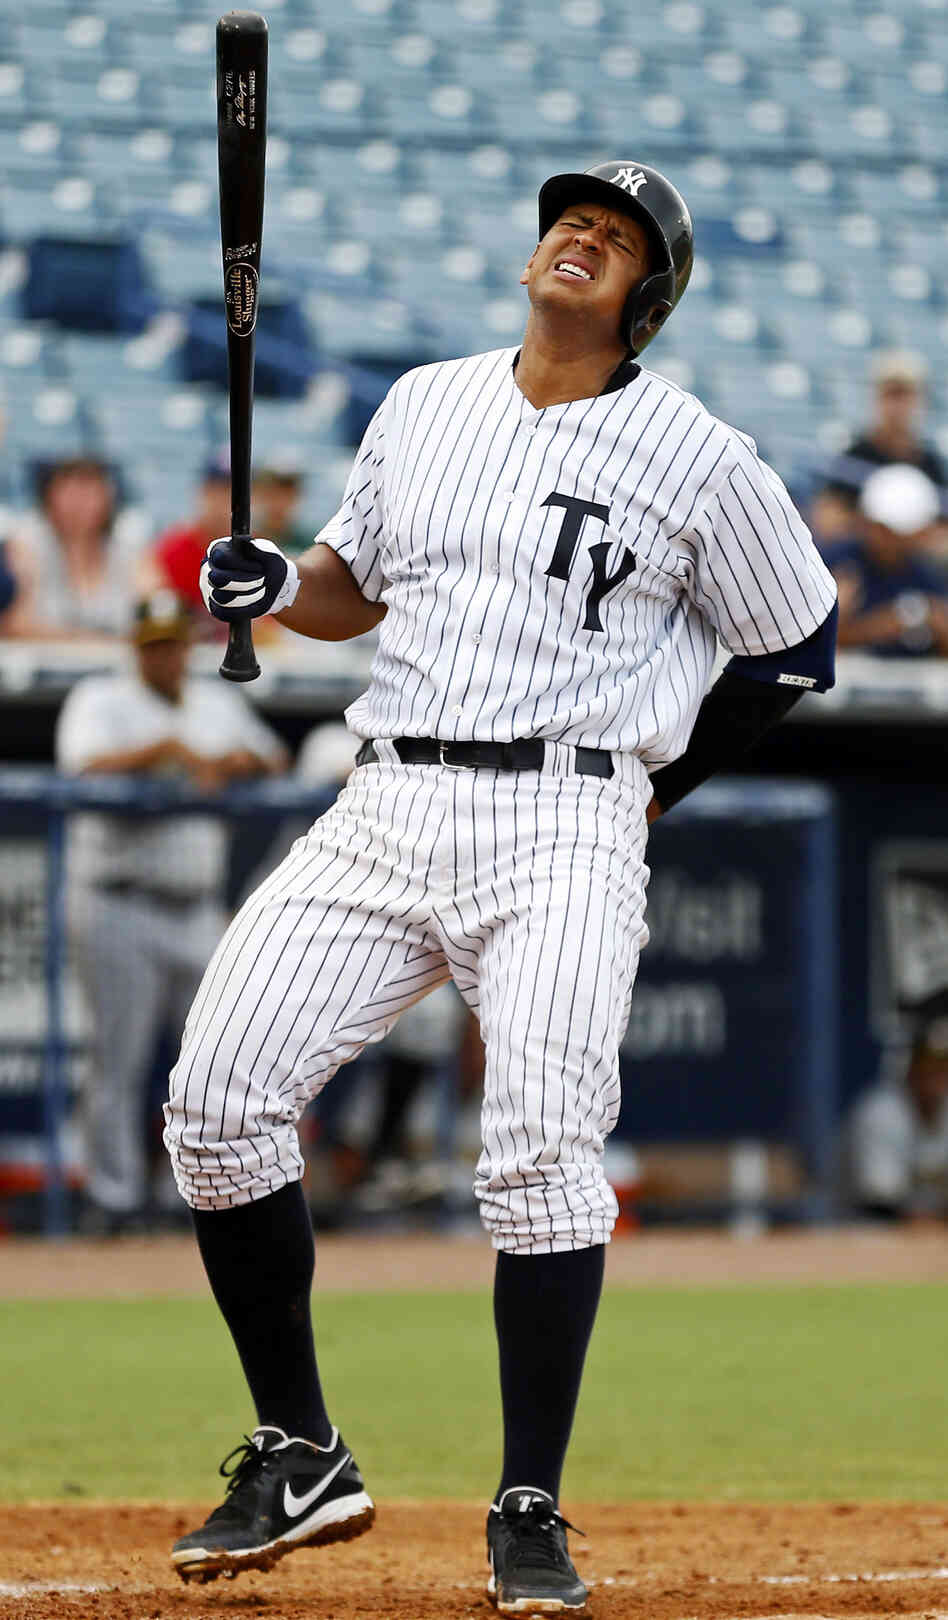 Alex Rodriguez during a July 13 game in Florida, where he was playing for the minor league Tampa Yankees while trying to recover from recent injuries.